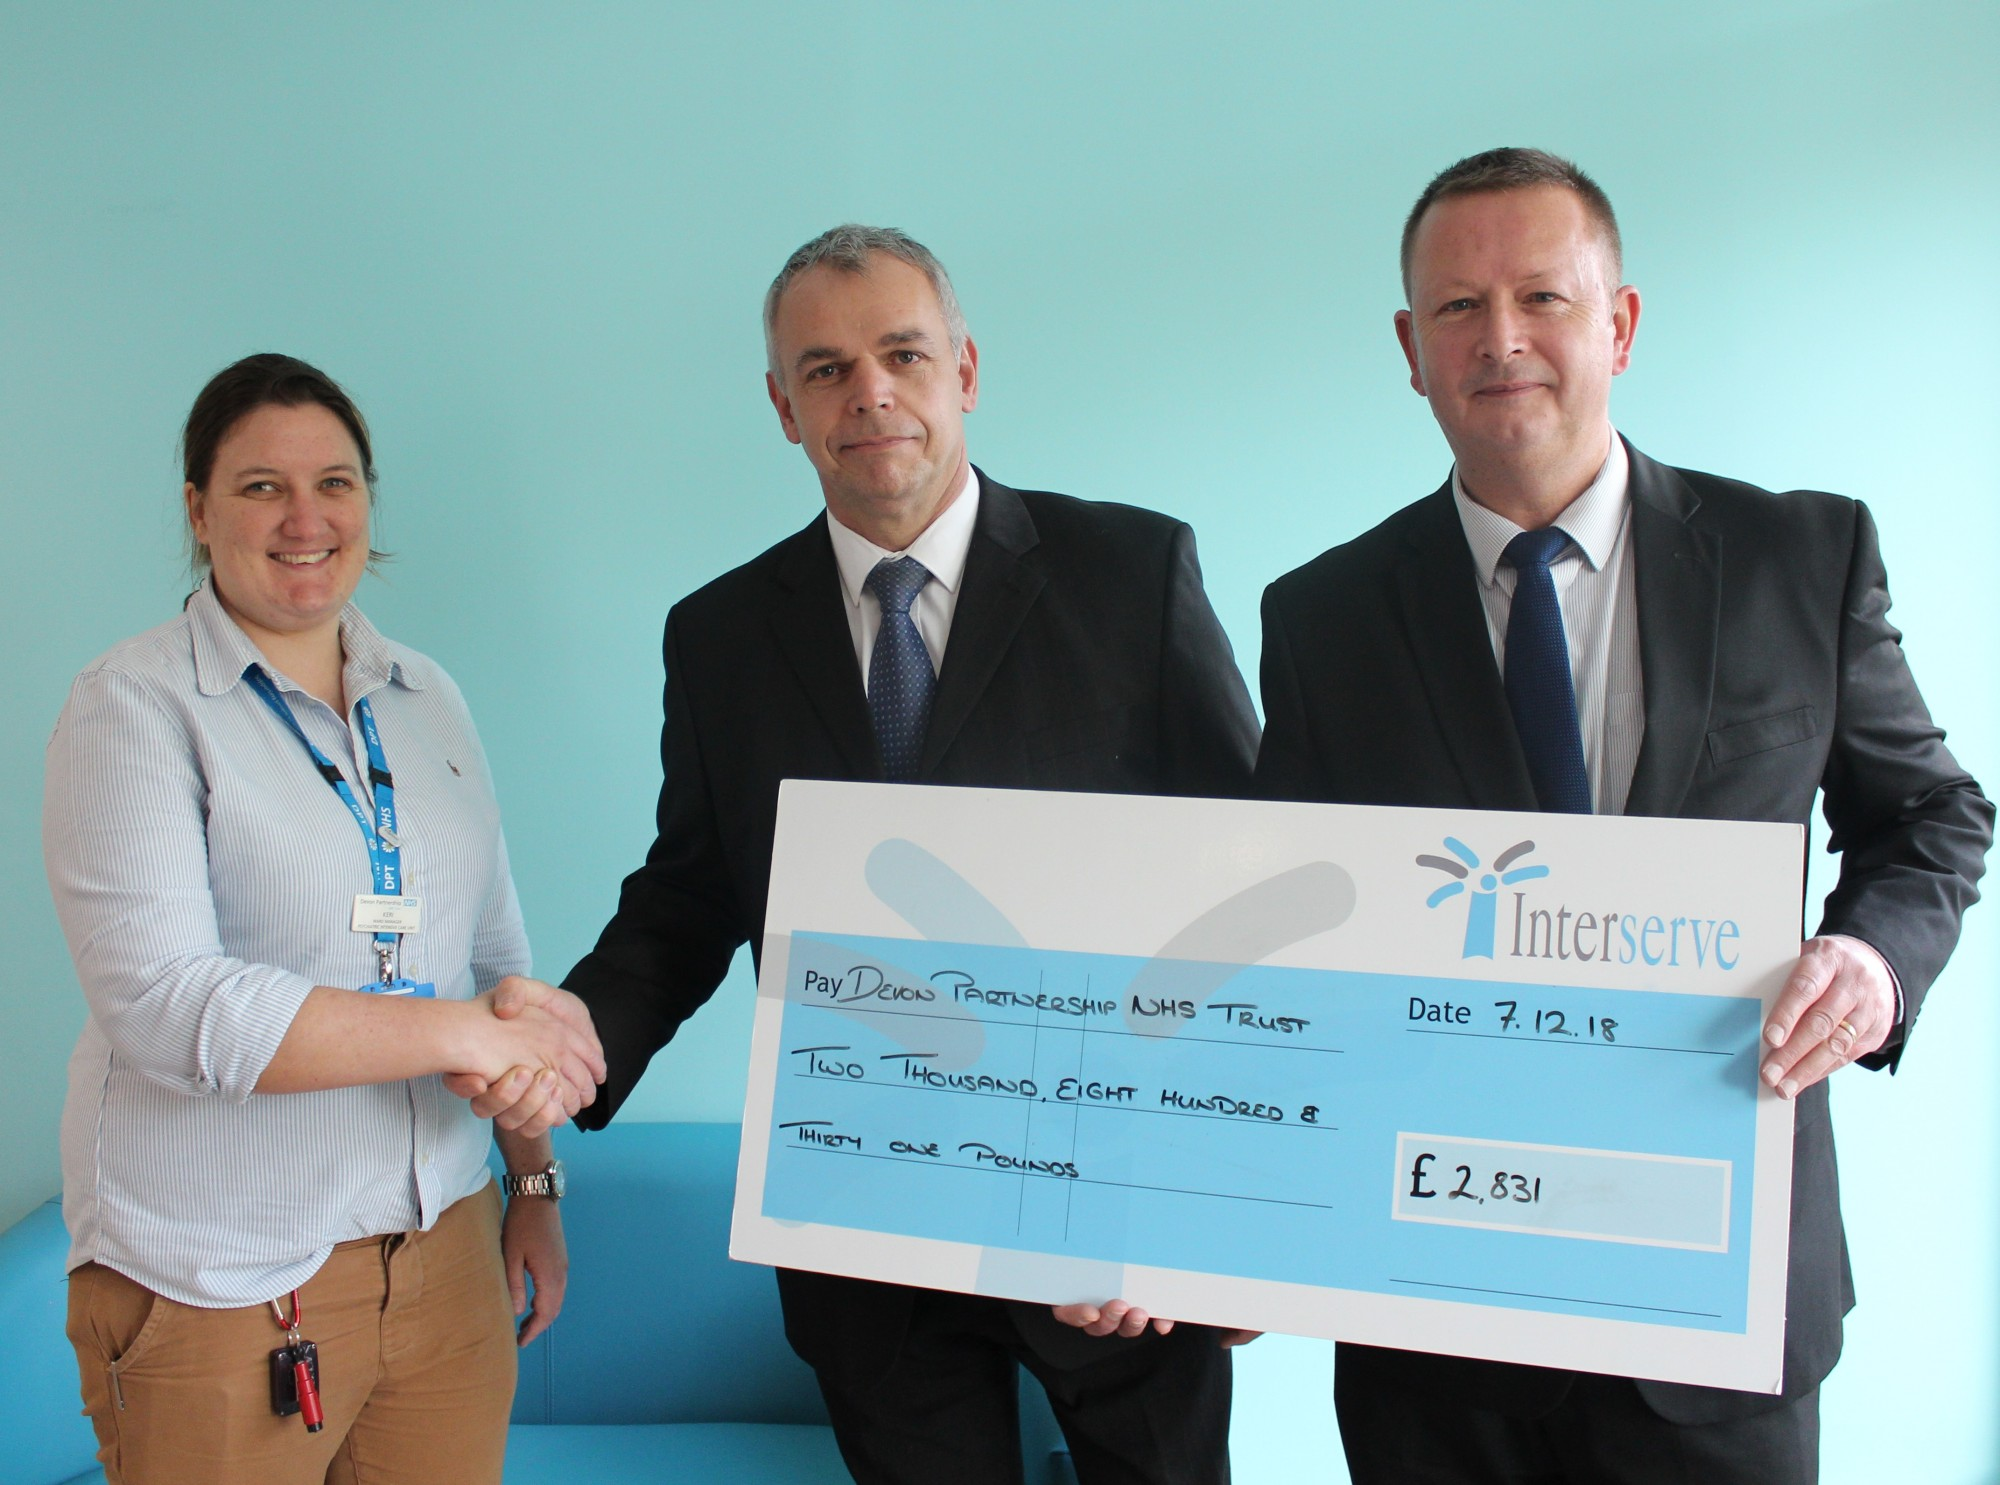 Interserve raises over £2,500 for our charity